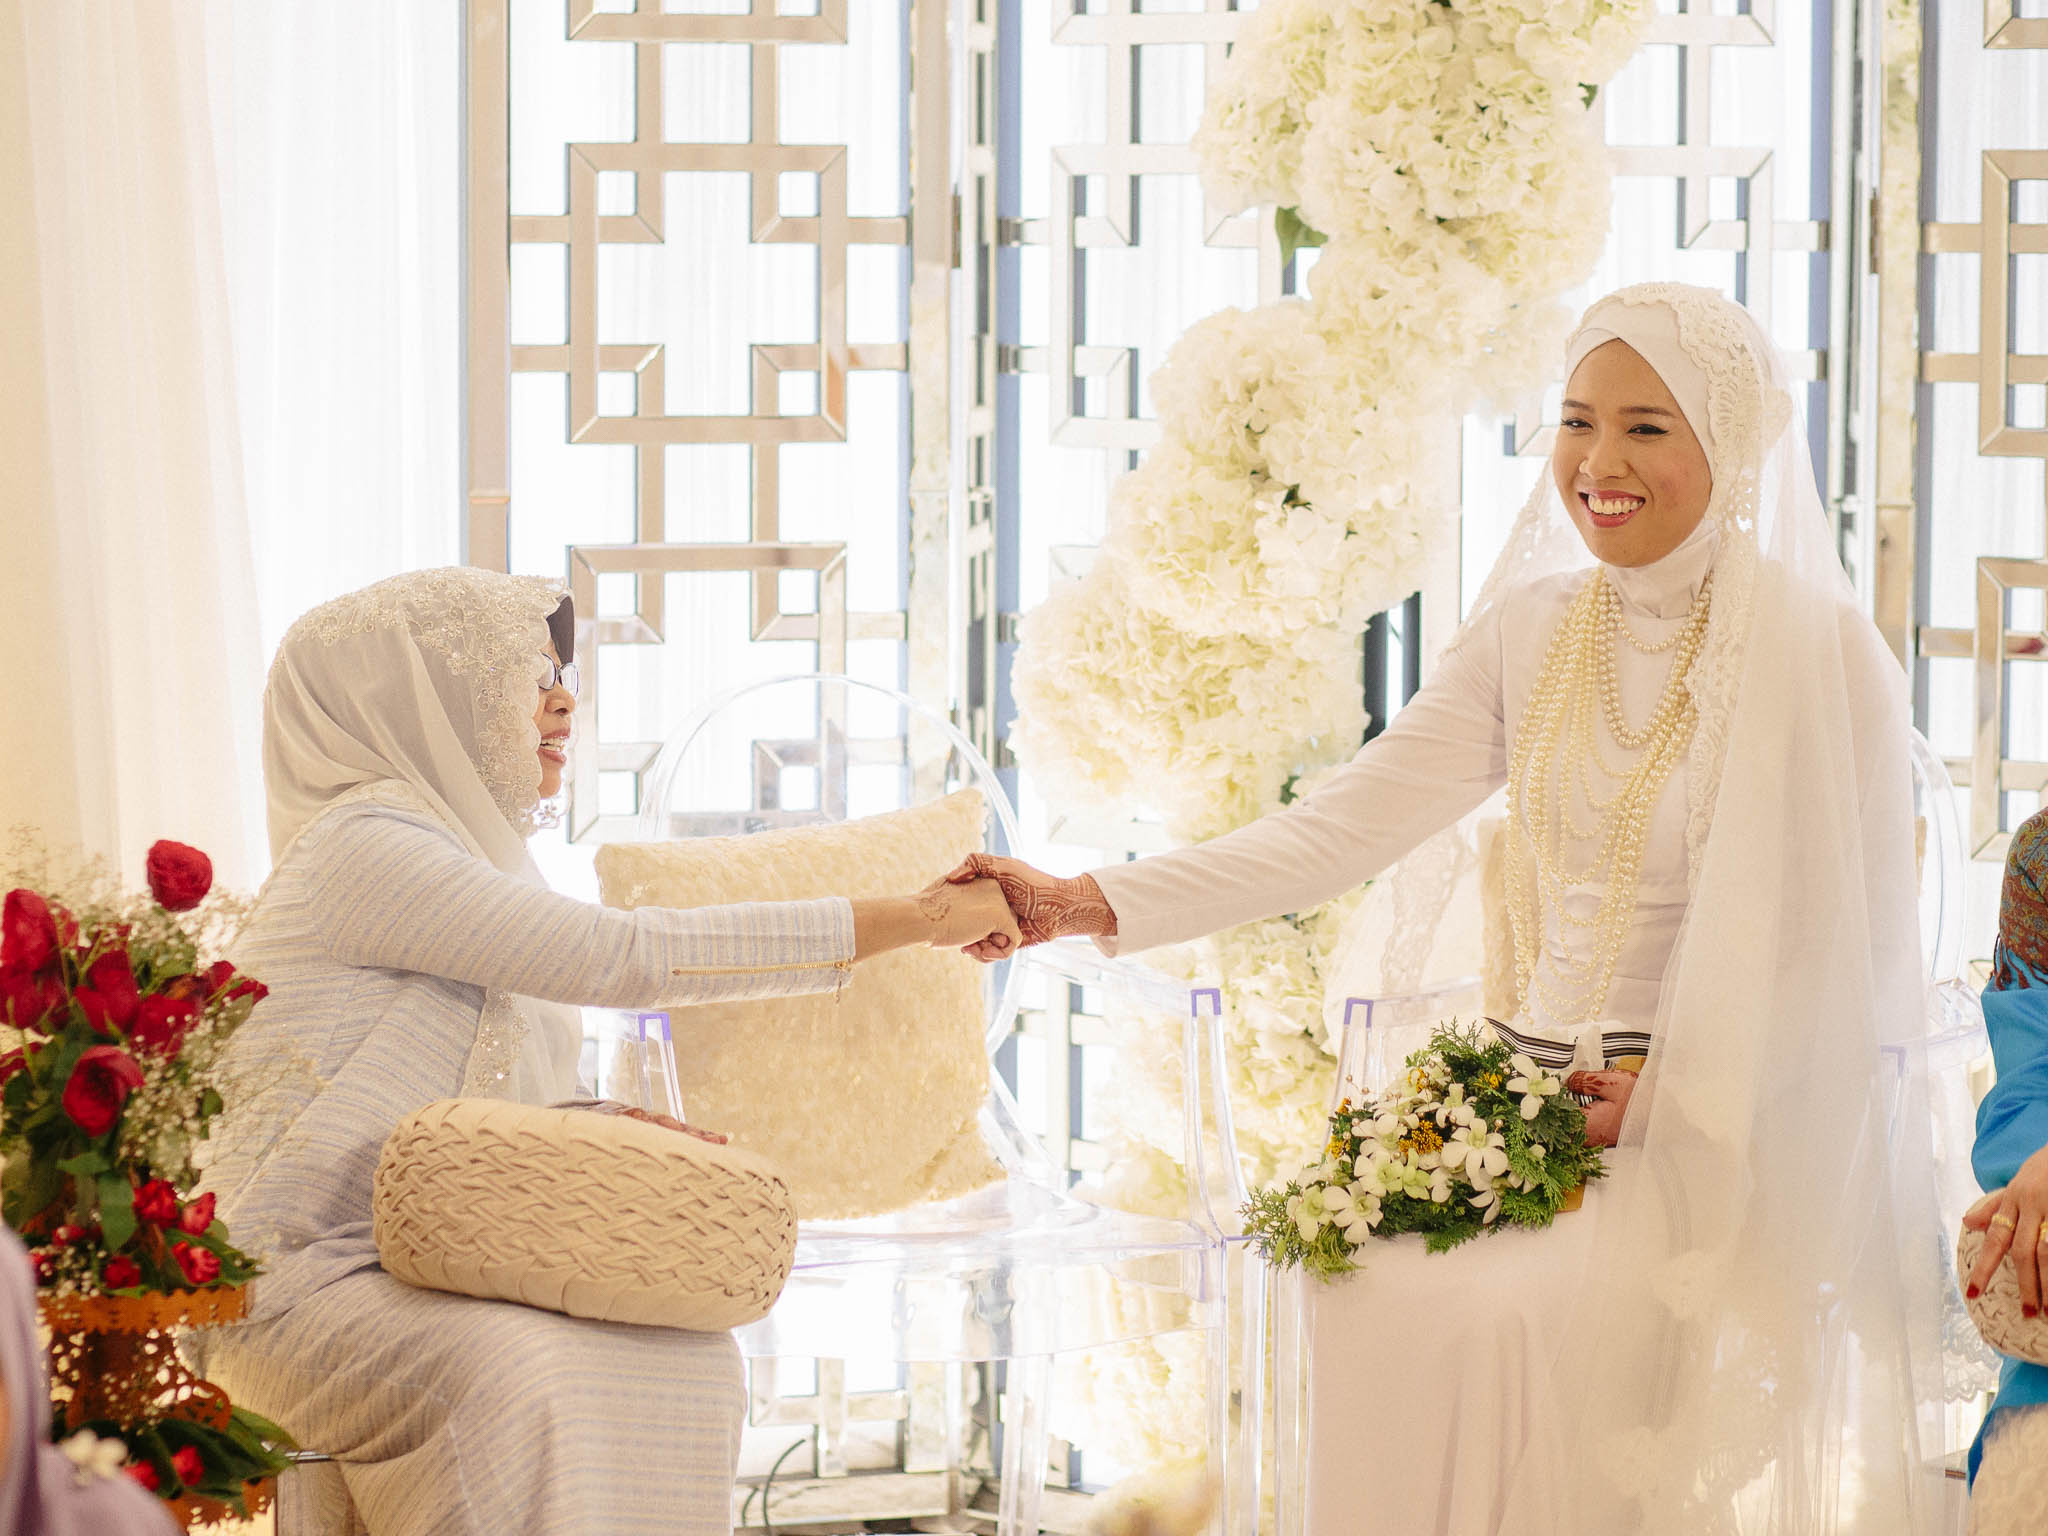 singapore-wedding-photographer-mega-asyraf-09.jpg